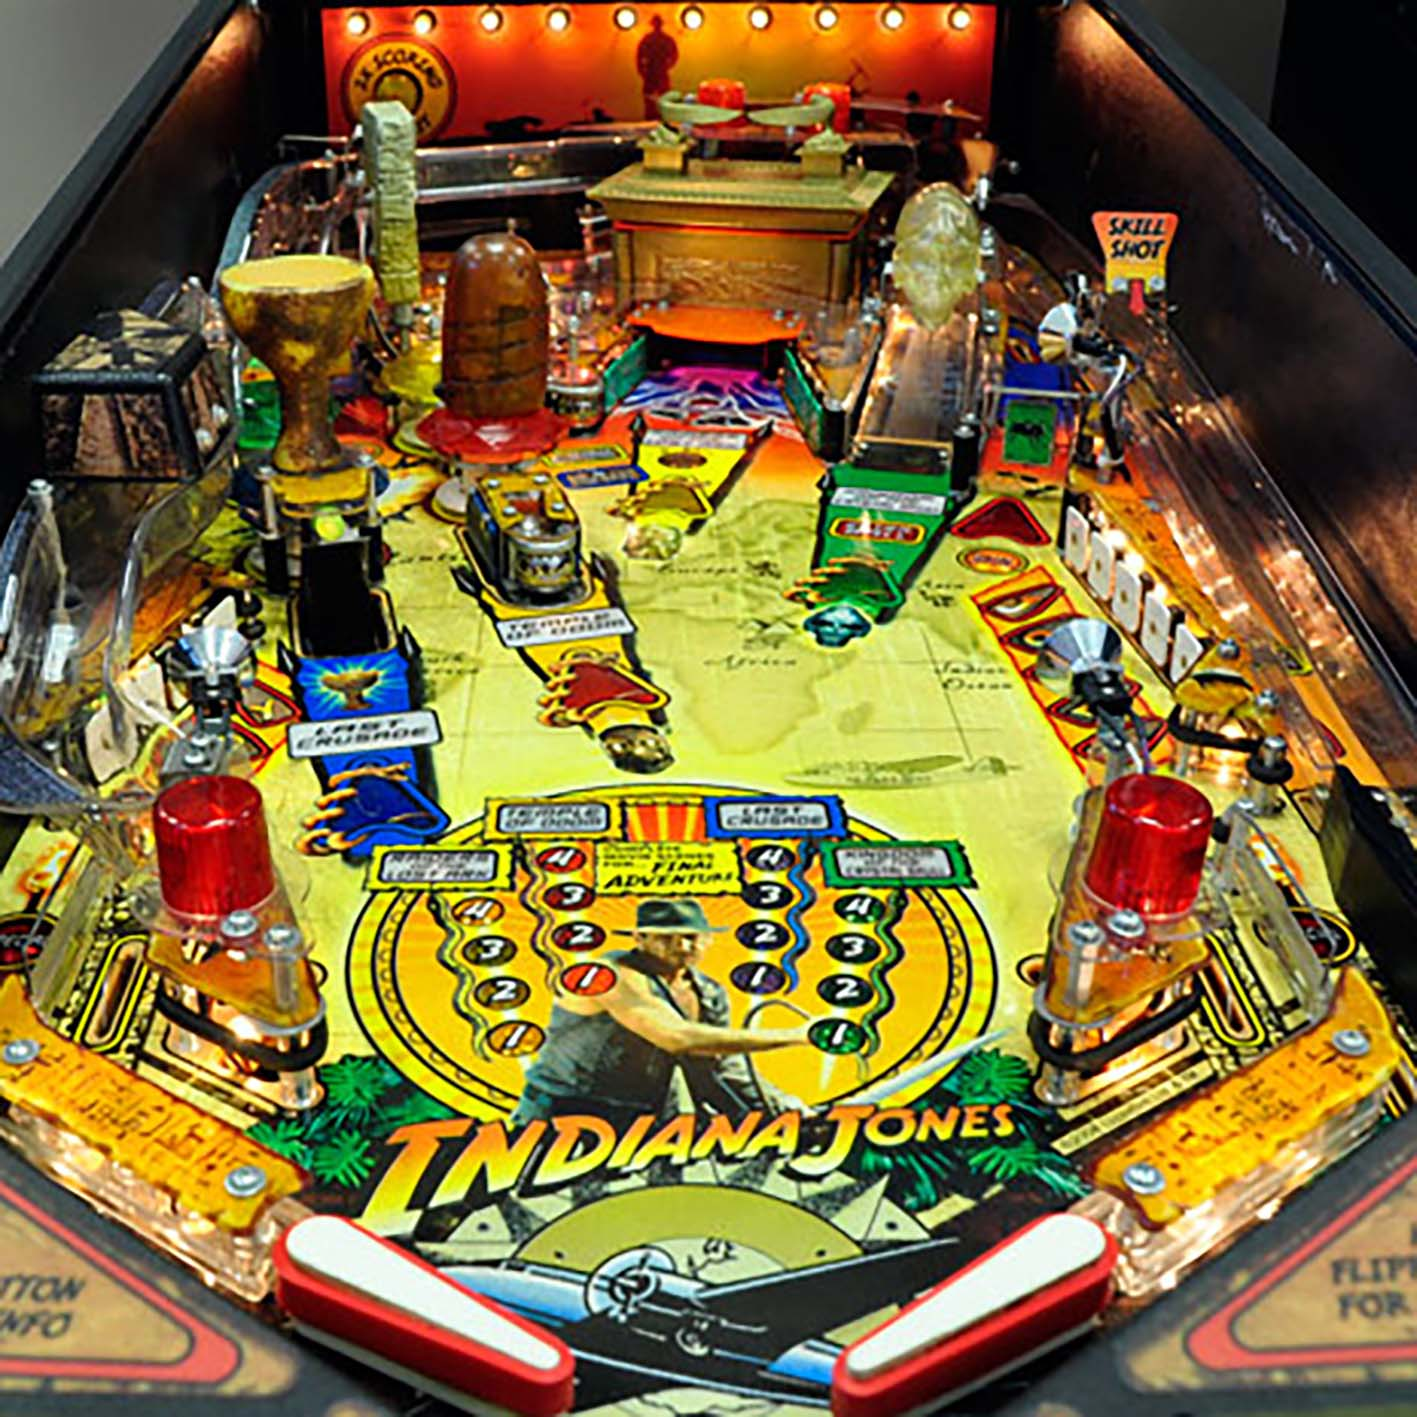 1982 Indiana Jones Pinball Machine by Stern